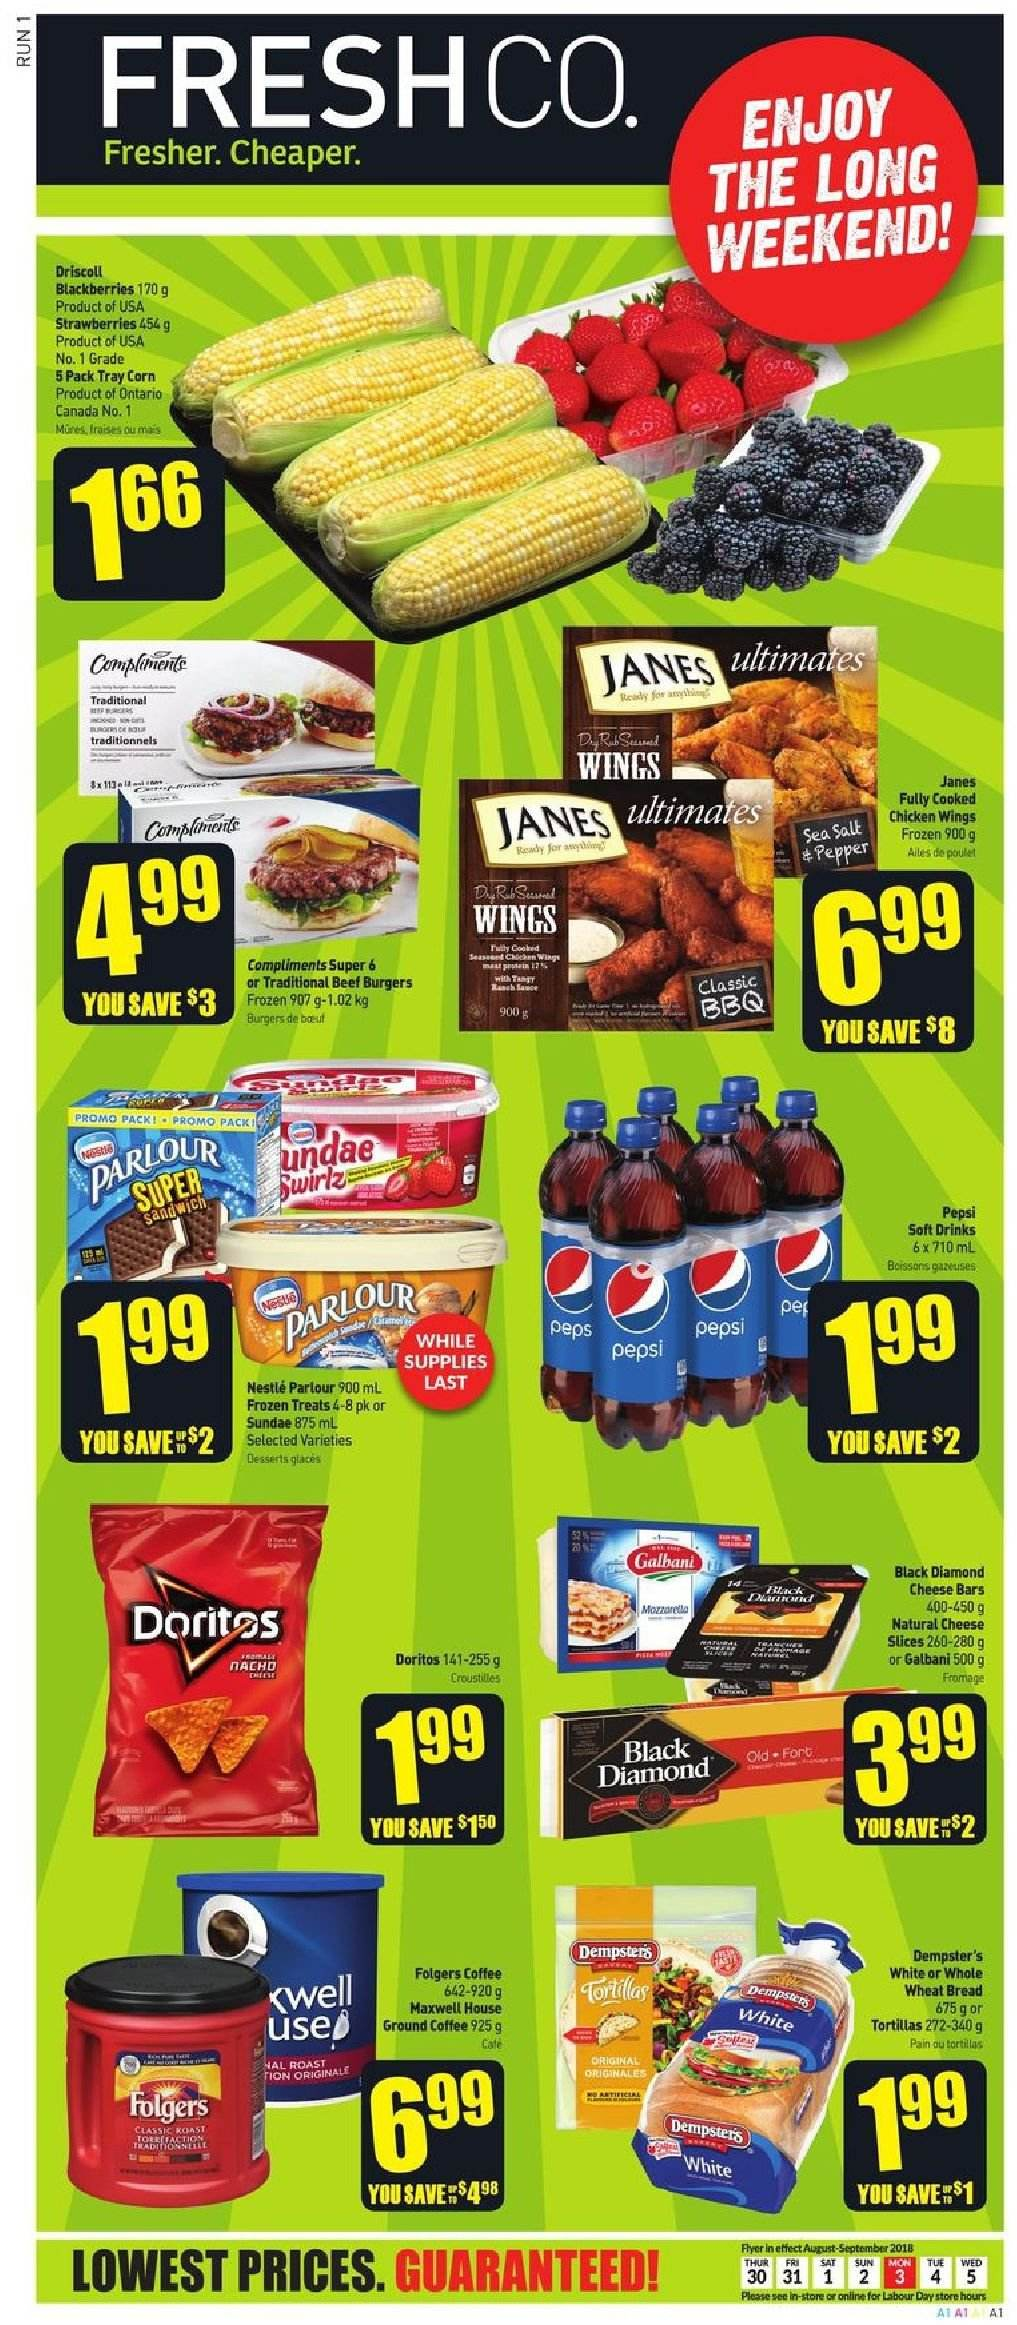 FreshCo. Flyer  - August 30, 2018 - September 05, 2018. Page 1.